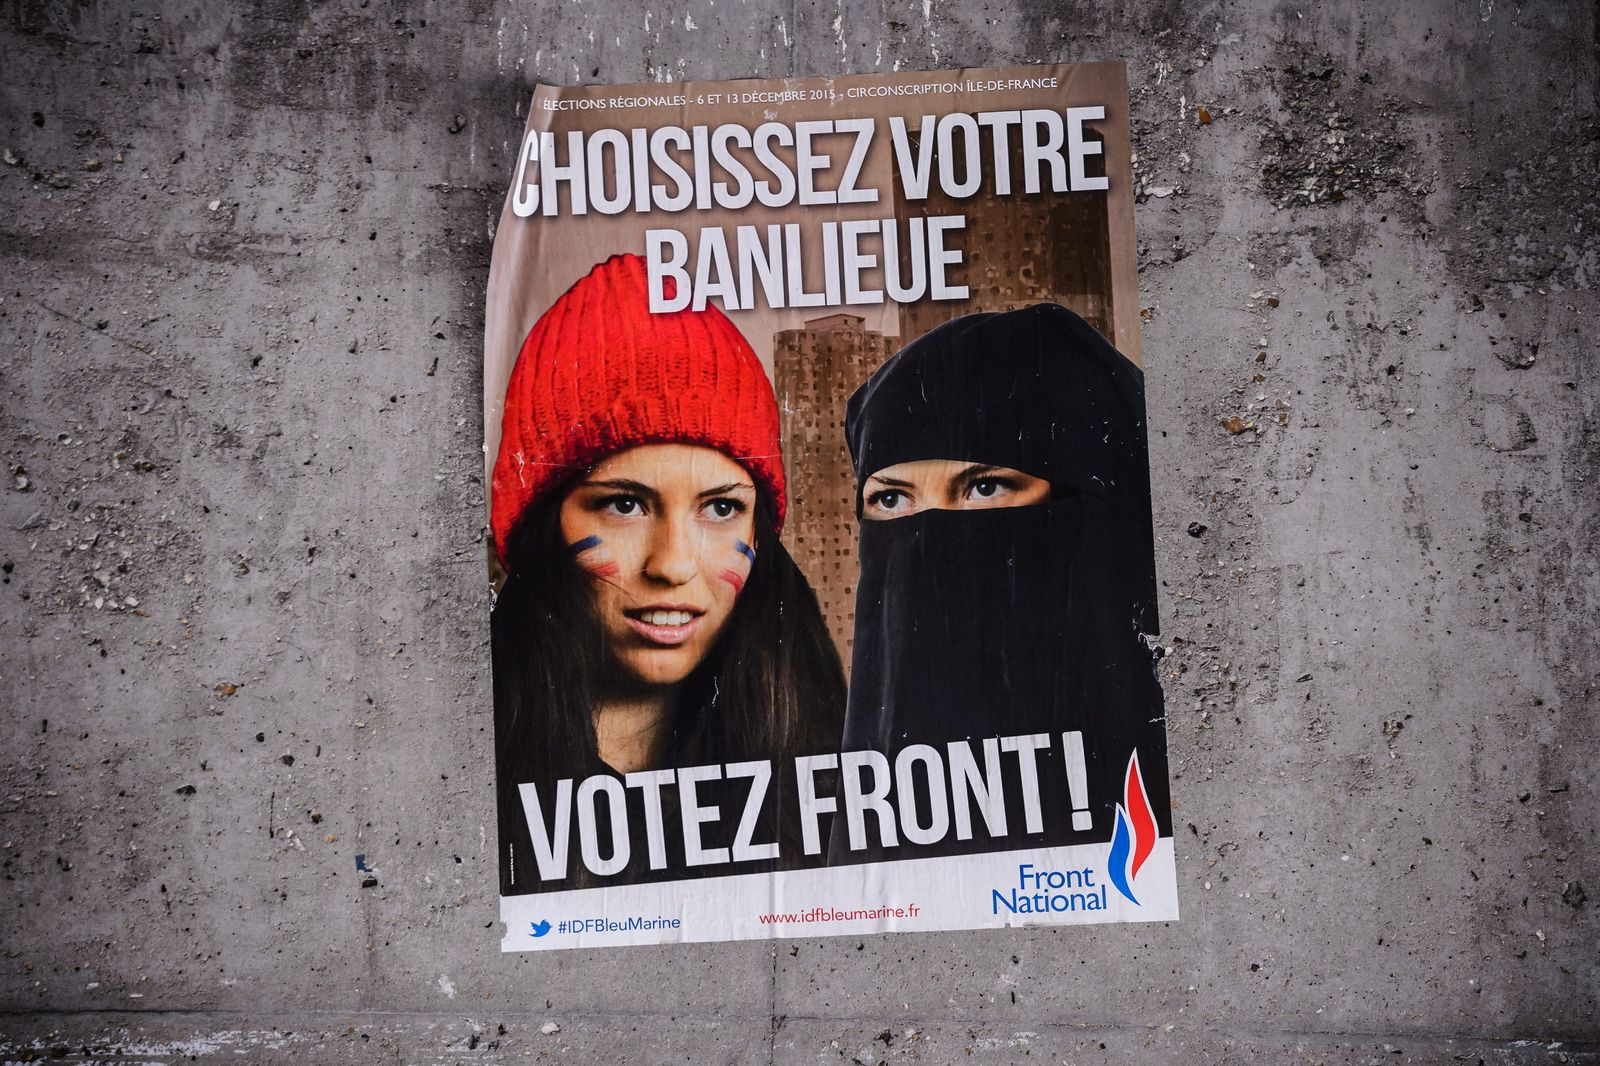 front national poster